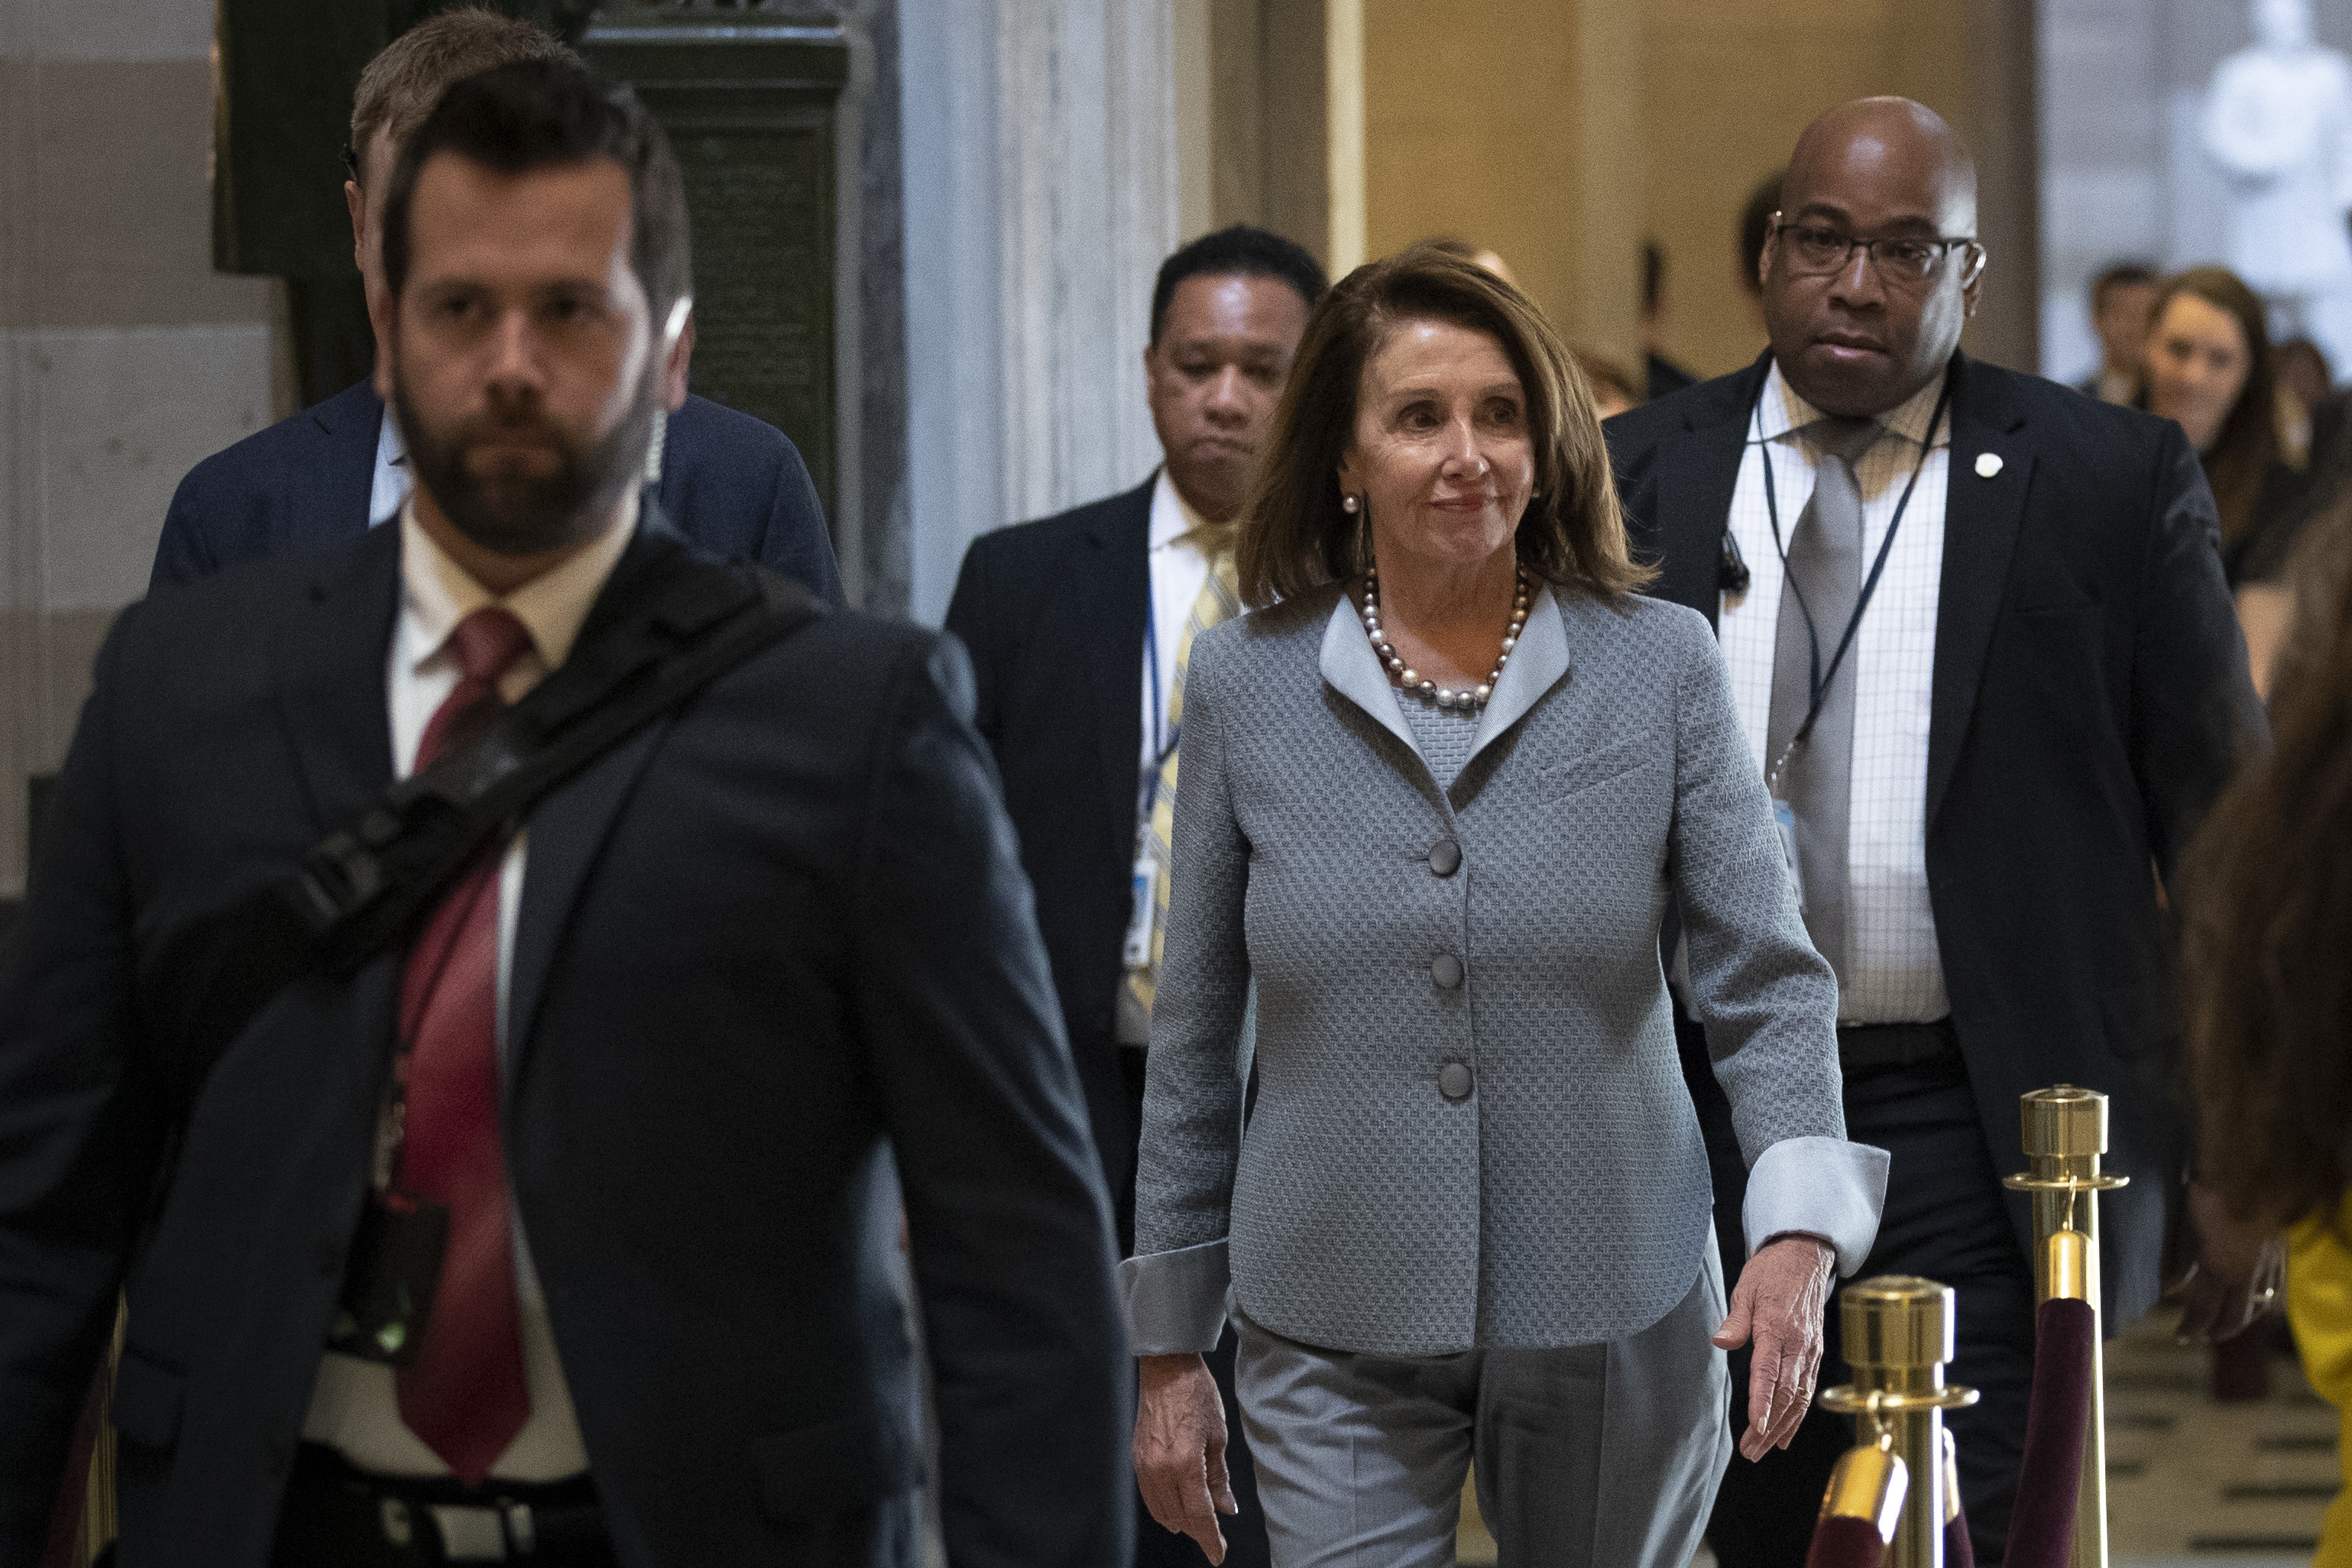 Speaker of the House Nancy Pelosi walks through Statuary Hall after leaving her office at the U.S. Capitol, March 26, 2019 in Washington, DC. (Photo by Drew Angerer/Getty Images)